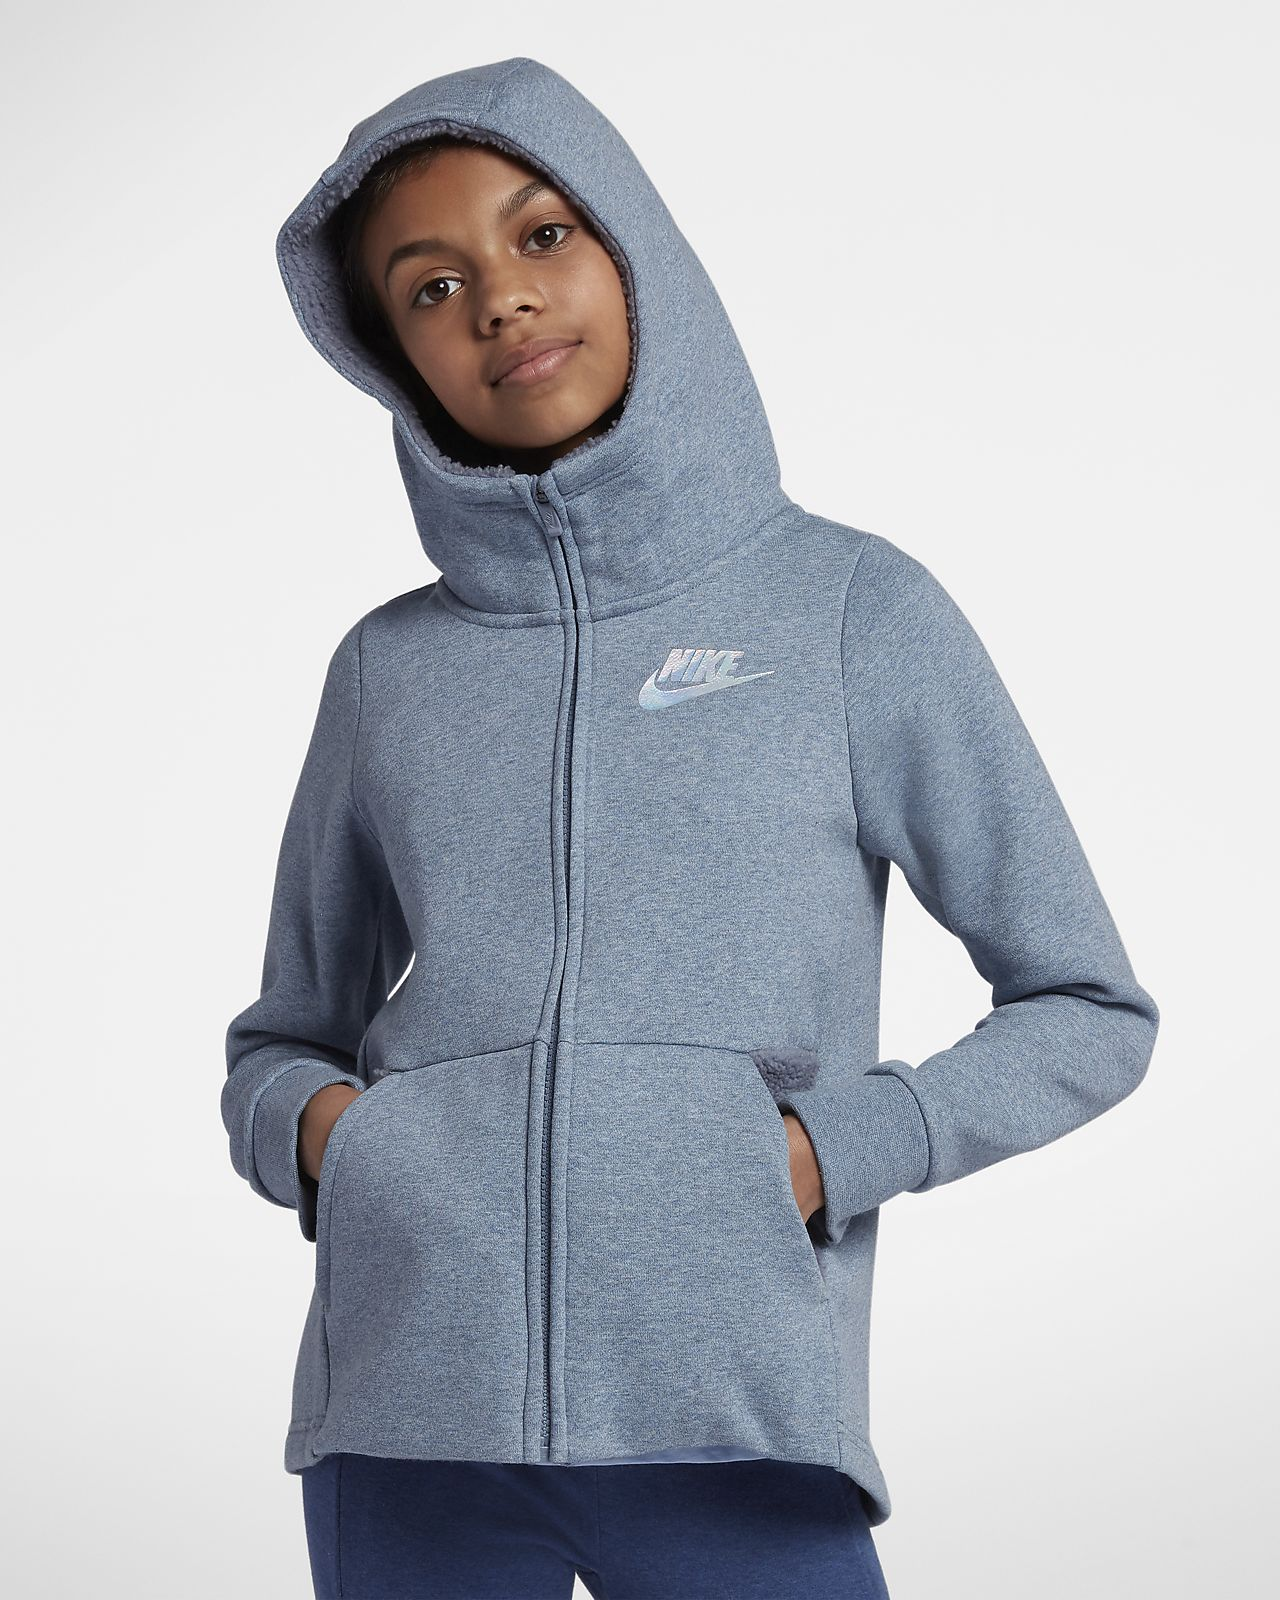 d8f446235 Nike Sportswear Older Kids' (Girls') Full-Zip Hoodie. Nike.com GB